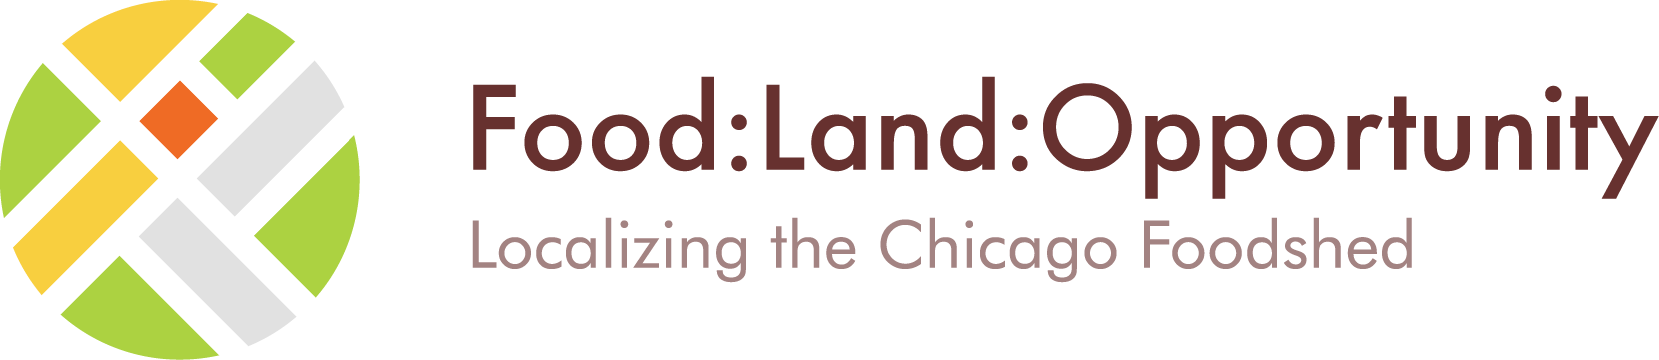 Food:Land:Opportunity